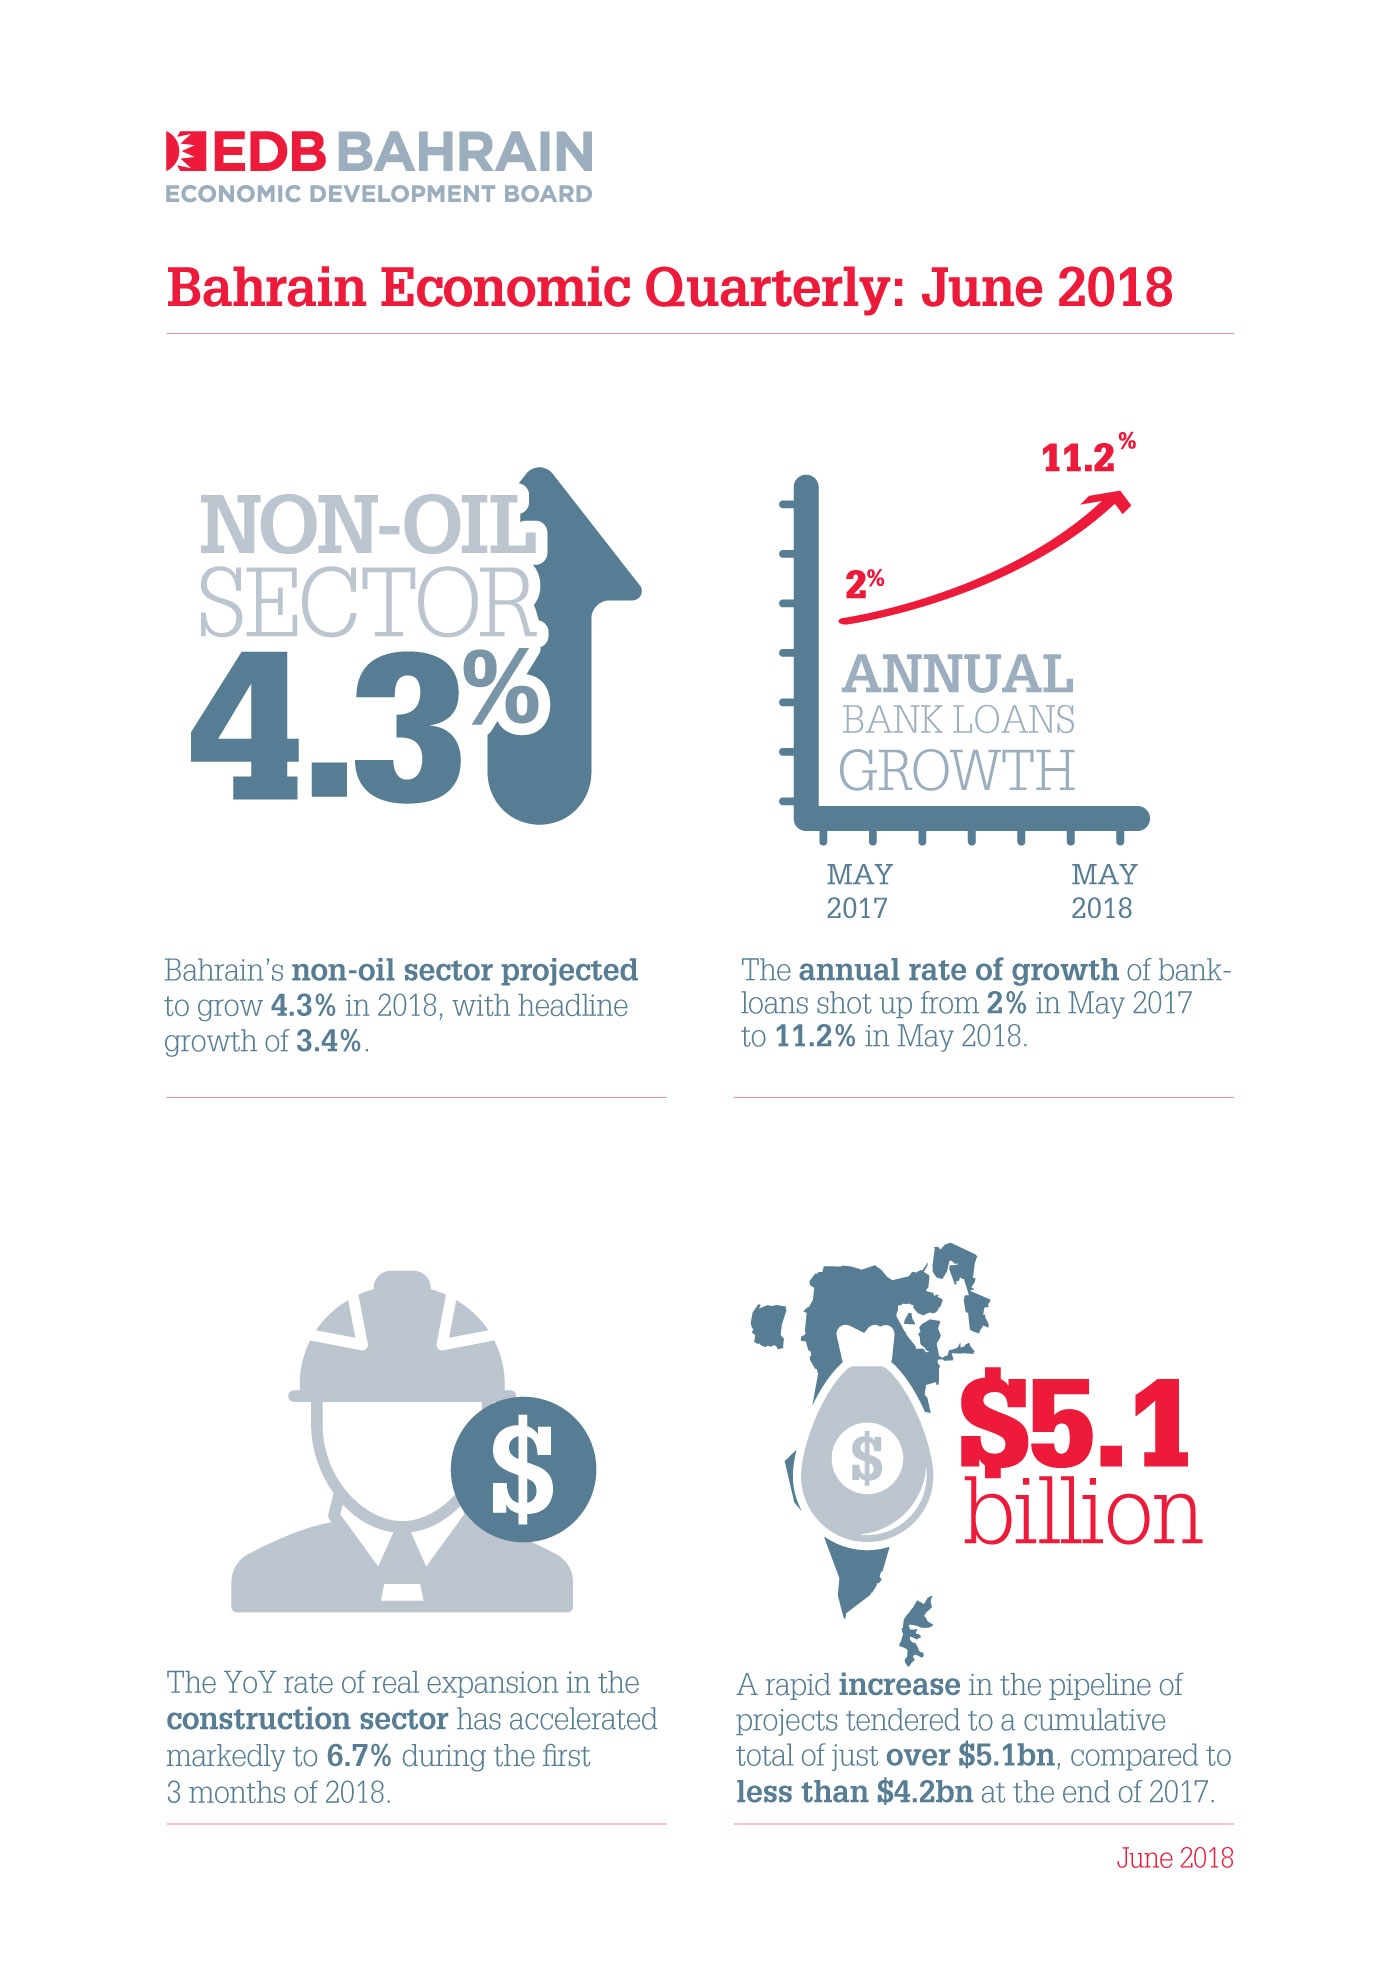 Acceleration in project momentum to drive non-oil growth in Bahrain in 2018